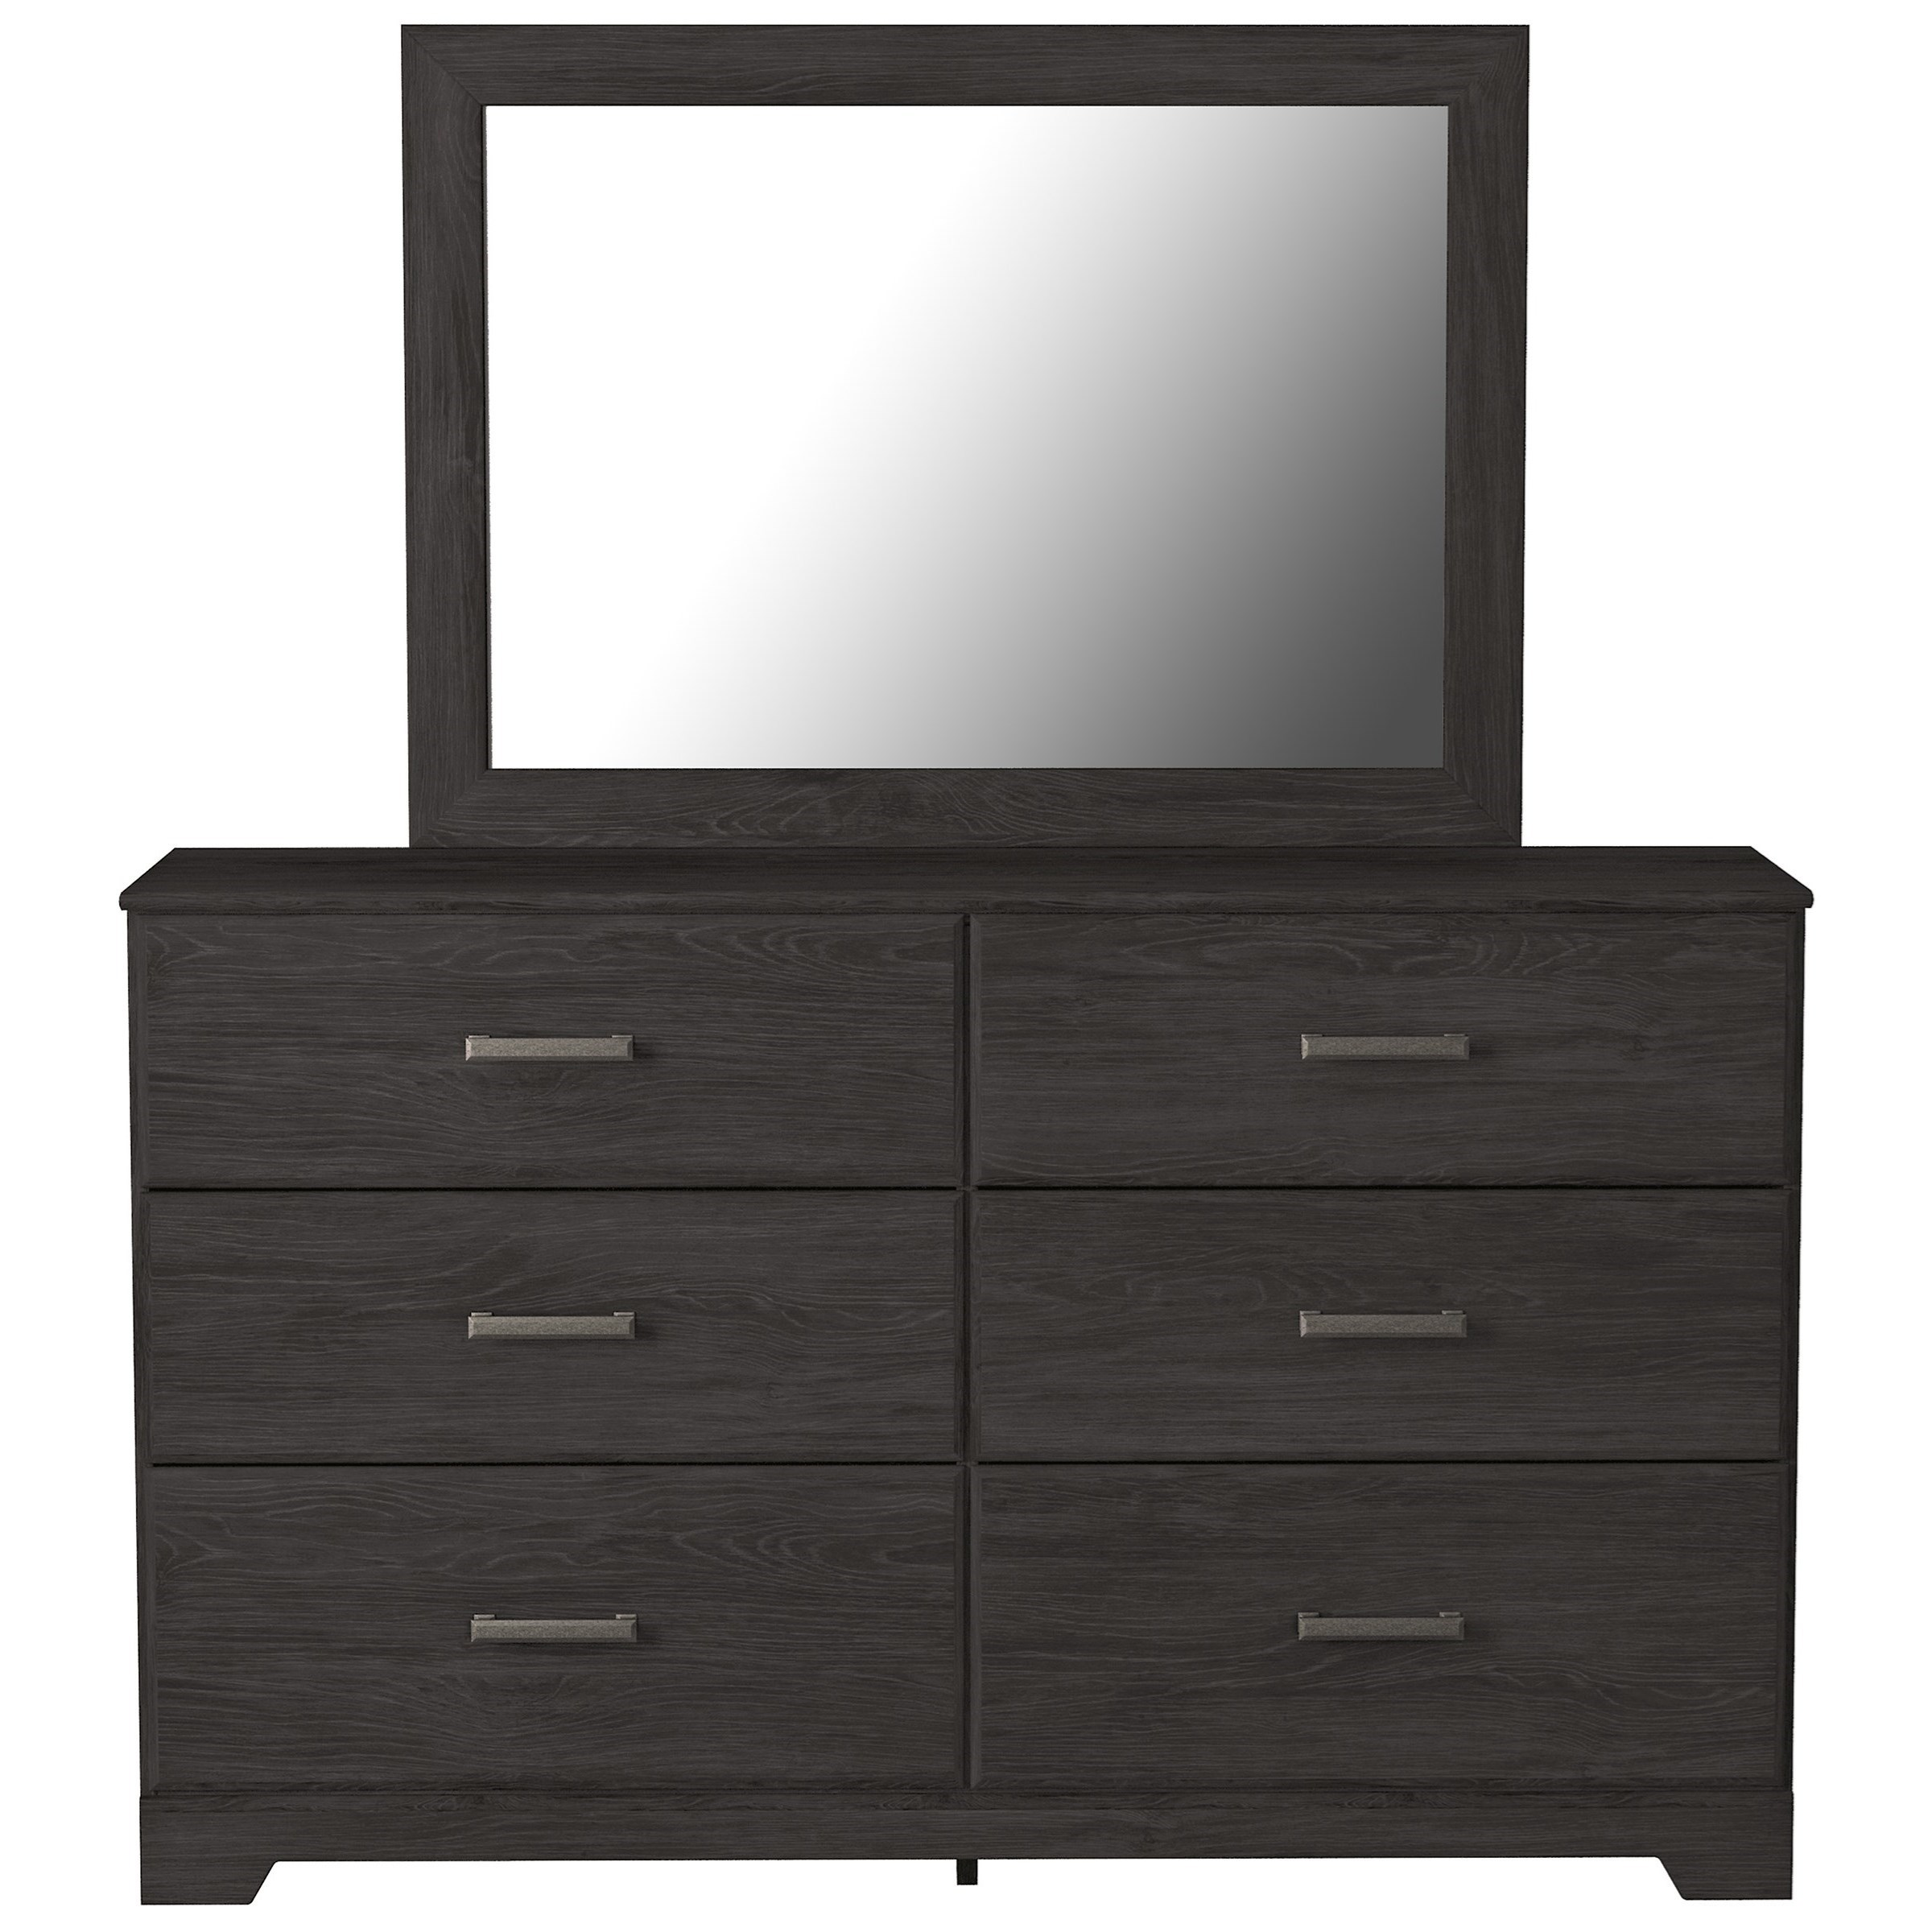 Belachime Dresser & Bedroom Mirror by Signature Design by Ashley at Houston's Yuma Furniture